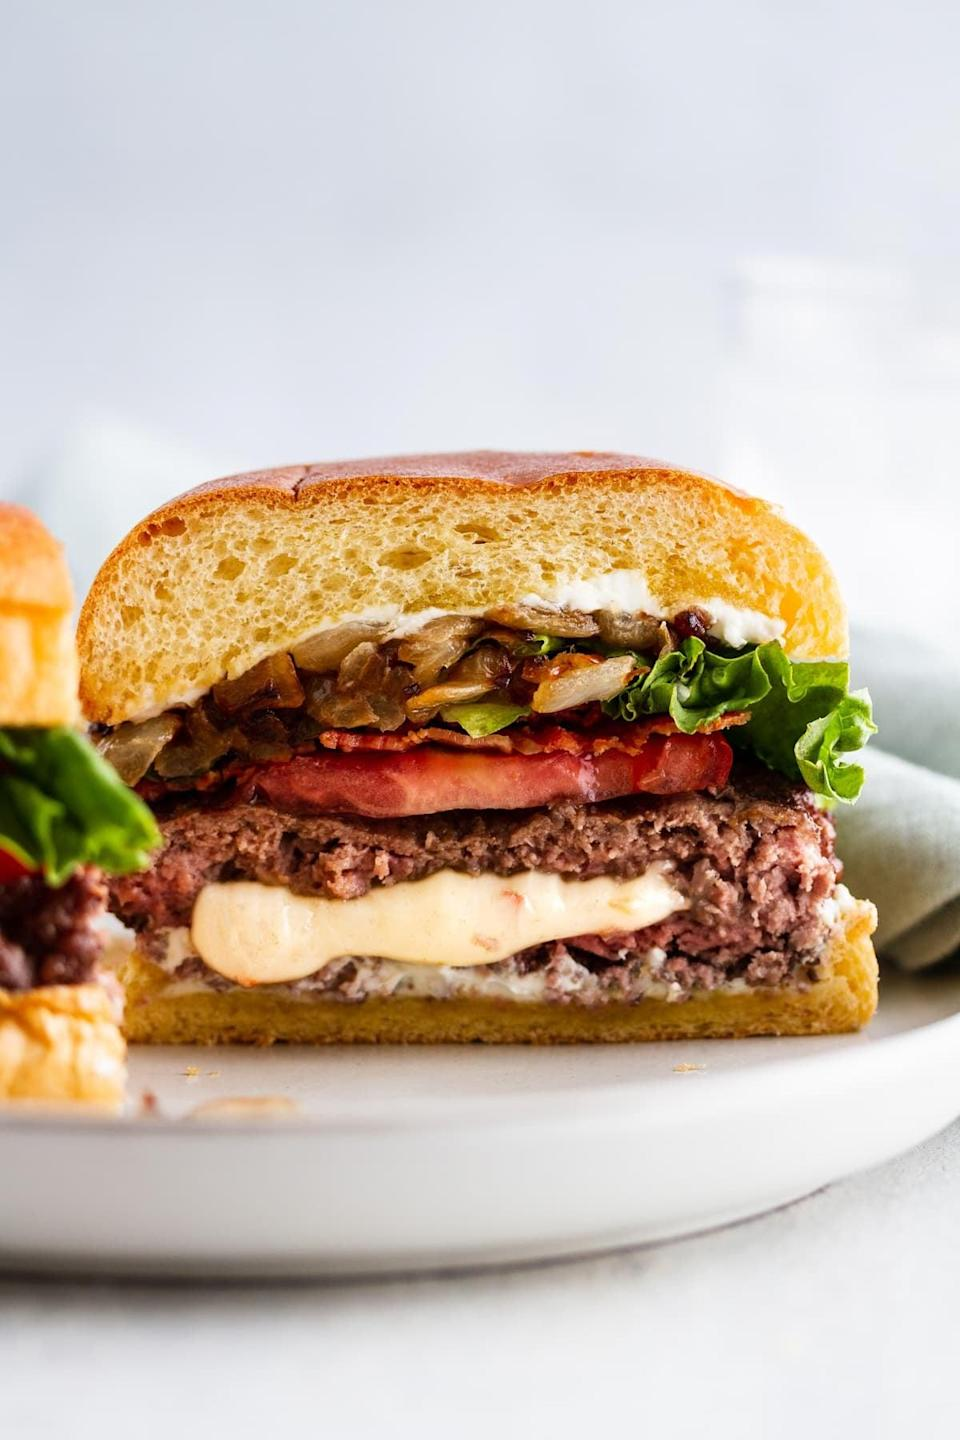 "<p>Good meat is easy to find in Missouri, meaning this over-the-top burger recipe is about to get even better. It puts thick-cut Pepper Jack cheese <em>inside</em> the burger patties so the finished product is oozing with rich flavors.</p> <p><strong>Get the recipe</strong>: <a href=""https://www.girlversusdough.com/pepper-jack-juicy-lucy/"" class=""link rapid-noclick-resp"" rel=""nofollow noopener"" target=""_blank"" data-ylk=""slk:pepper jack juicy lucy hamburger"">pepper jack juicy lucy hamburger</a></p>"